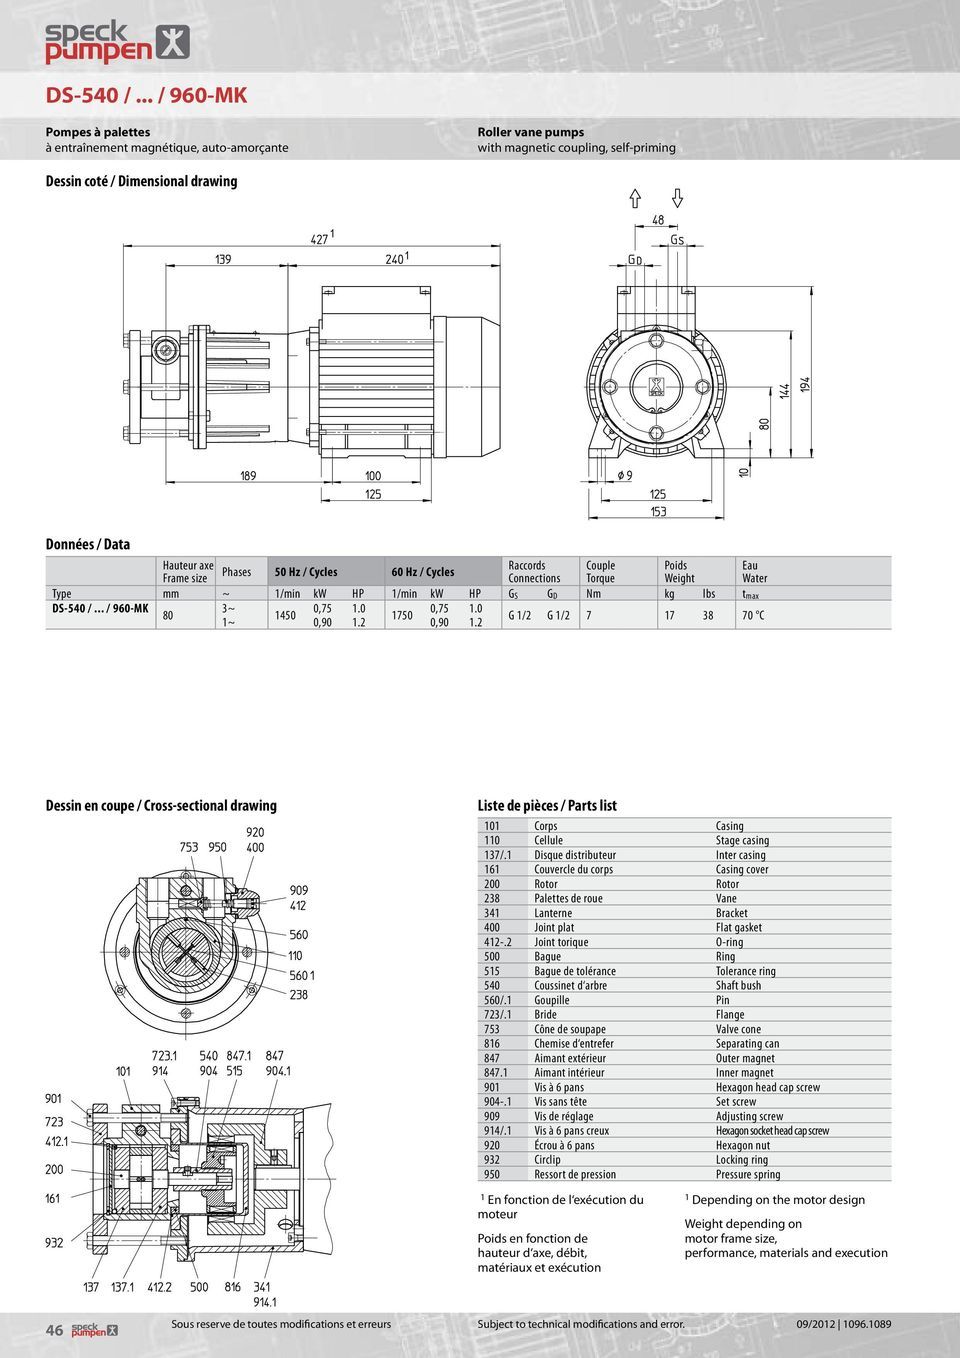 Poids Eau Connections Torque Weight Water Tye mm ~ /min kw HP /min kw HP G S G D Nm kg lbs t max .. / 9-MK 3~,75.,75. 5 75 G / G / 7 7 3 7 C ~,9.